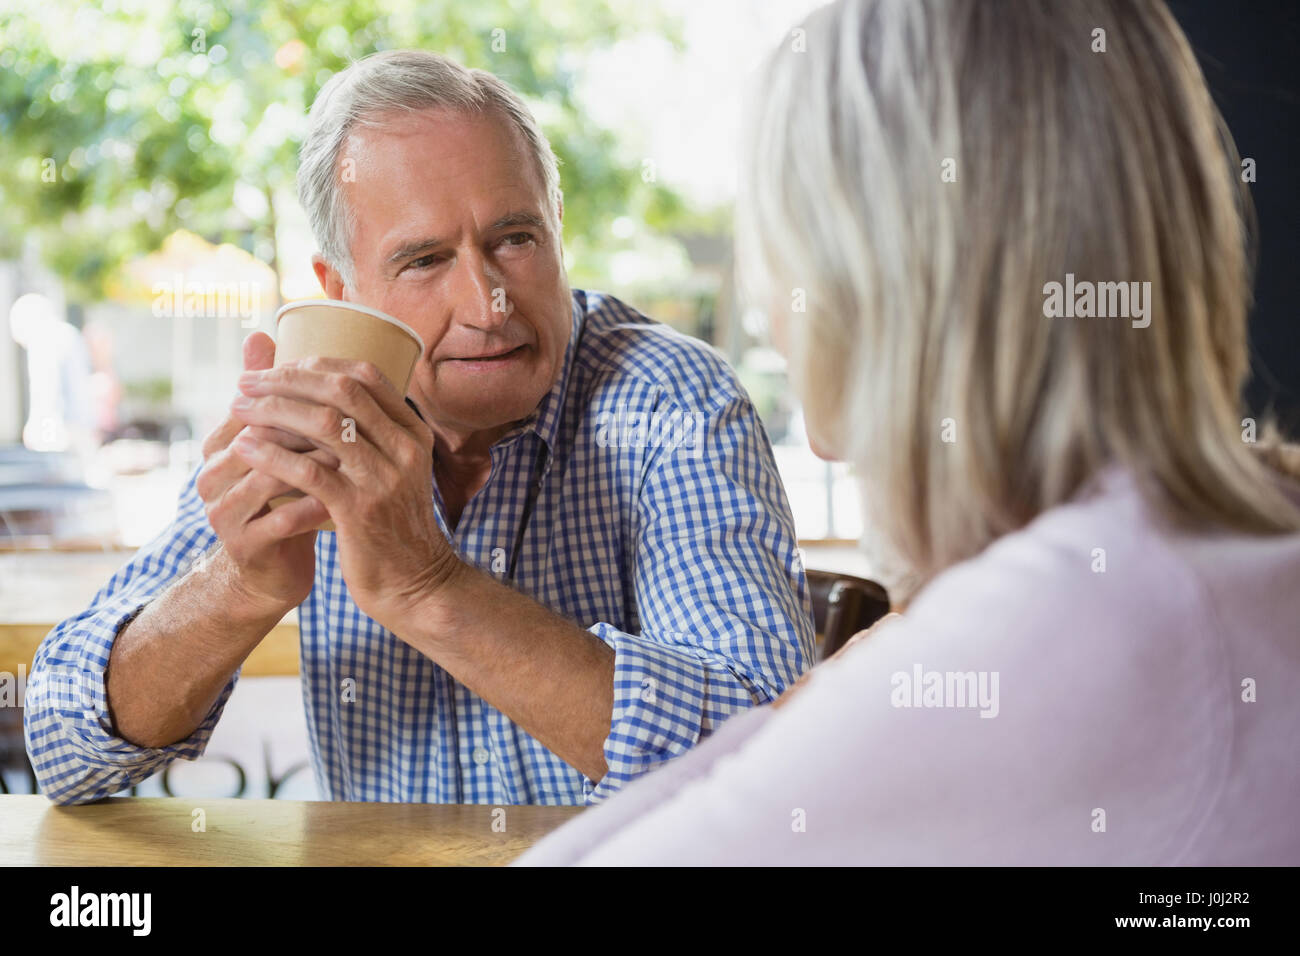 Senior couple interacting with each other in café - Stock Image